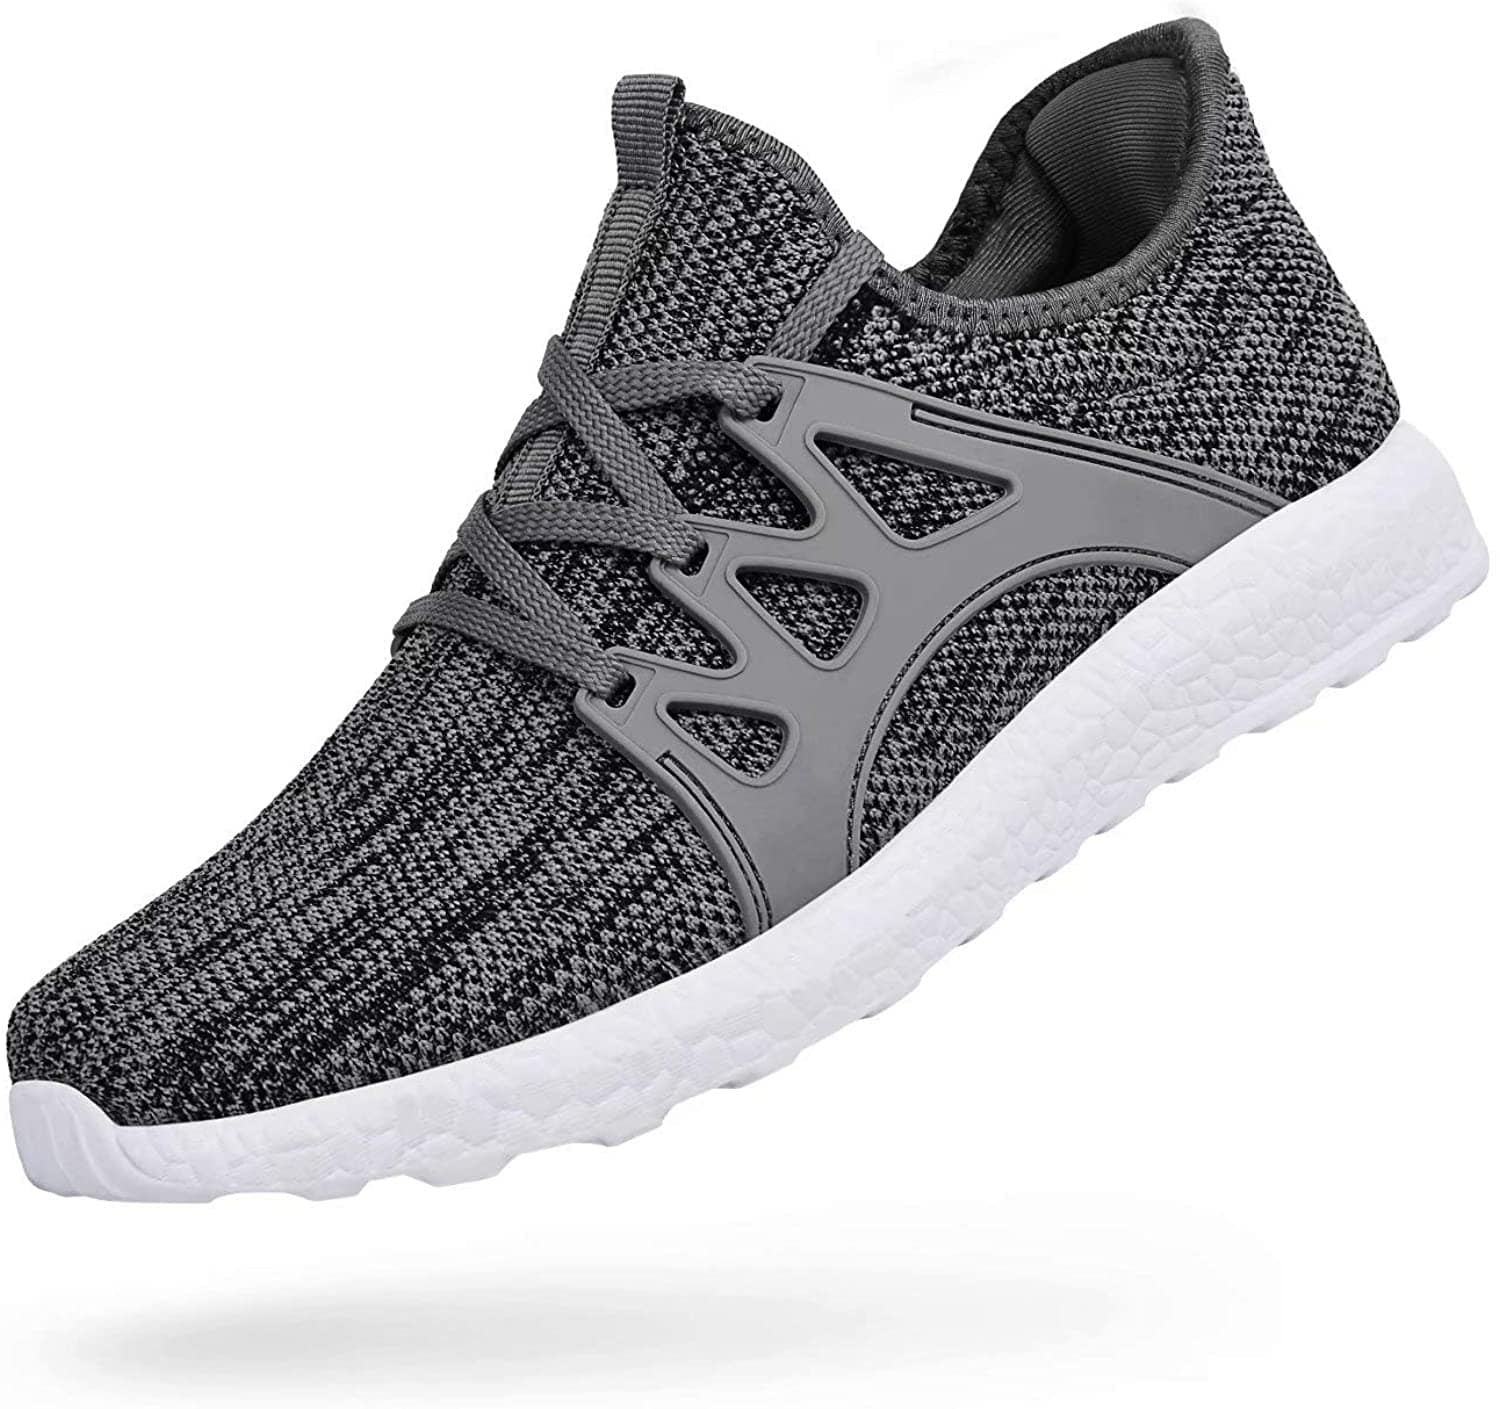 DAILYHAUTE MEN'S SHOES GREY / 7.5 Braveman Men's Lace-Up Knit Running Shoes Athleisure Sneakers